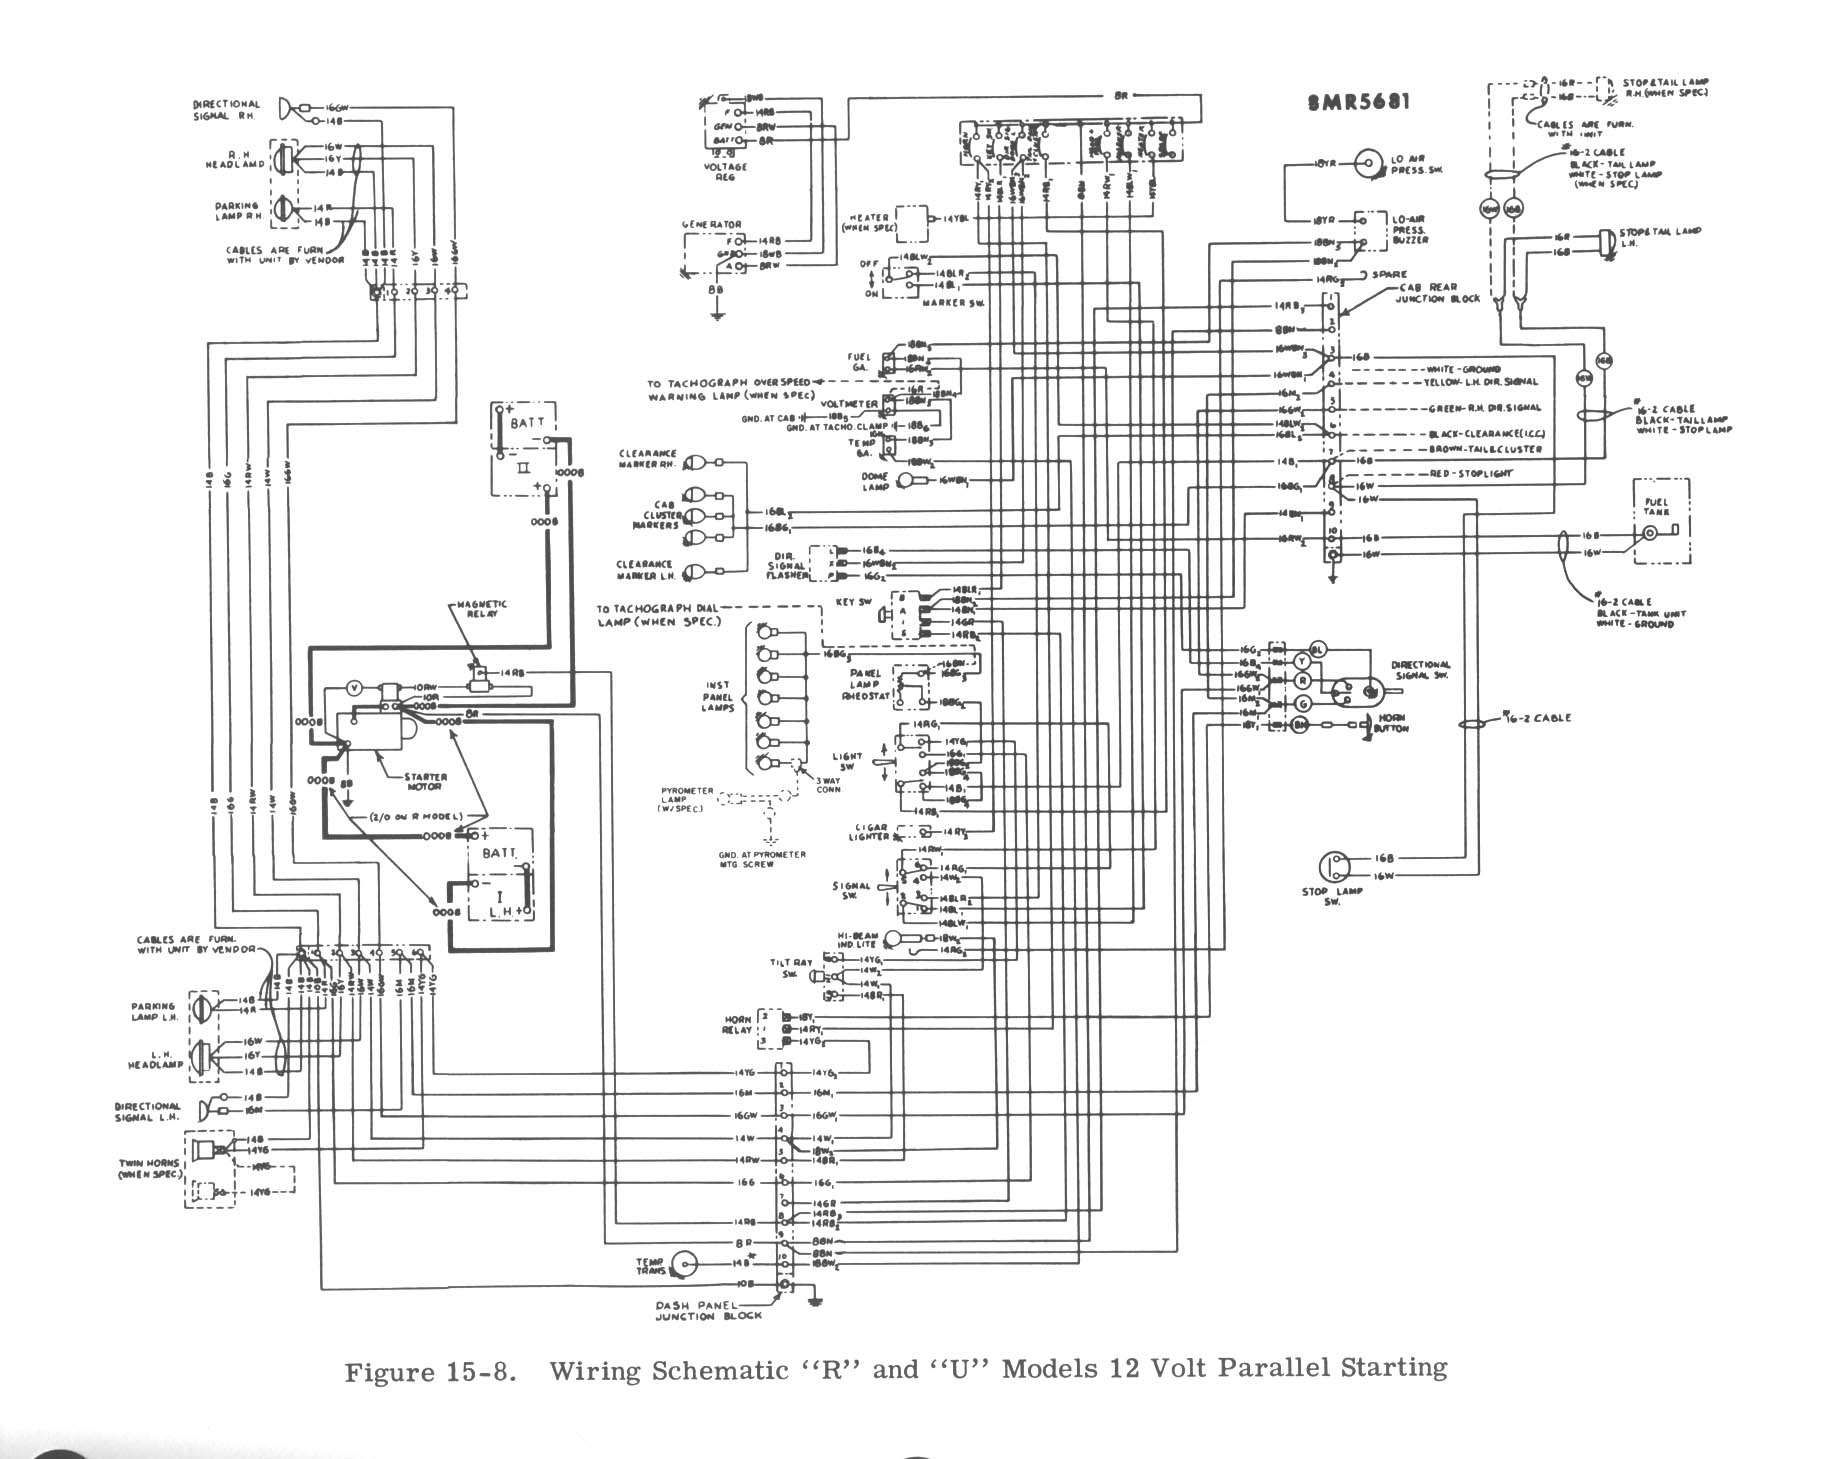 mack truck air line diagram, mack transmission wiring diagram 98, mack mp7 engine wiring schematic, on mack fire truck wiring schematic